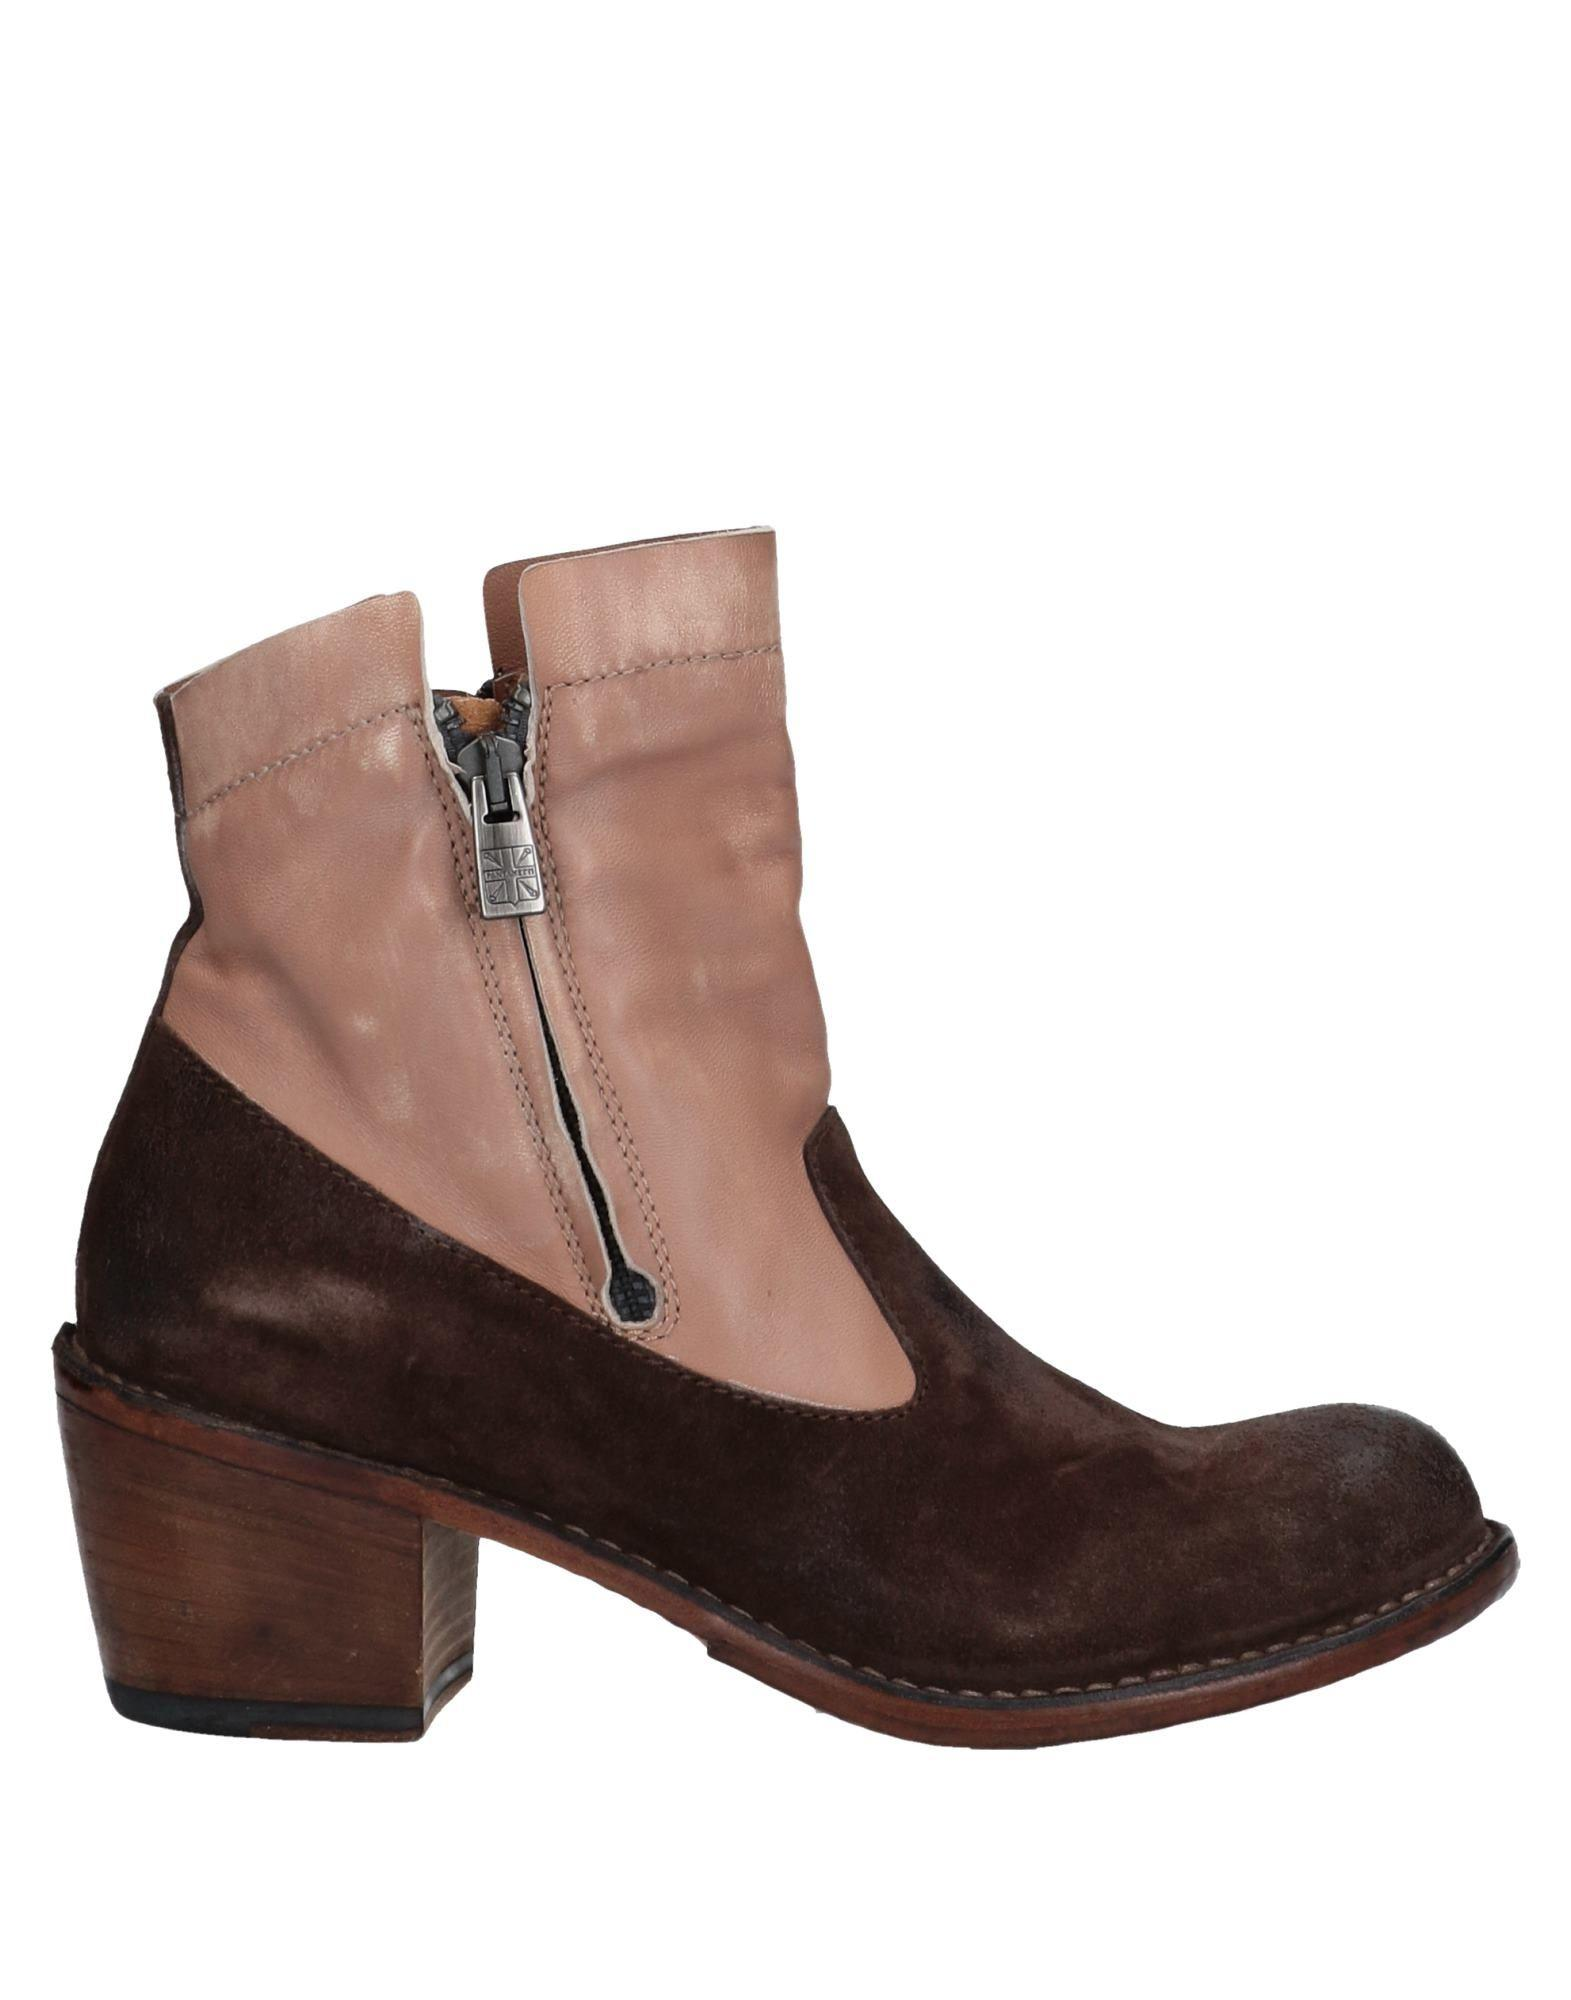 48231aa14a944 Lyst - Pantanetti Ankle Boots in Brown